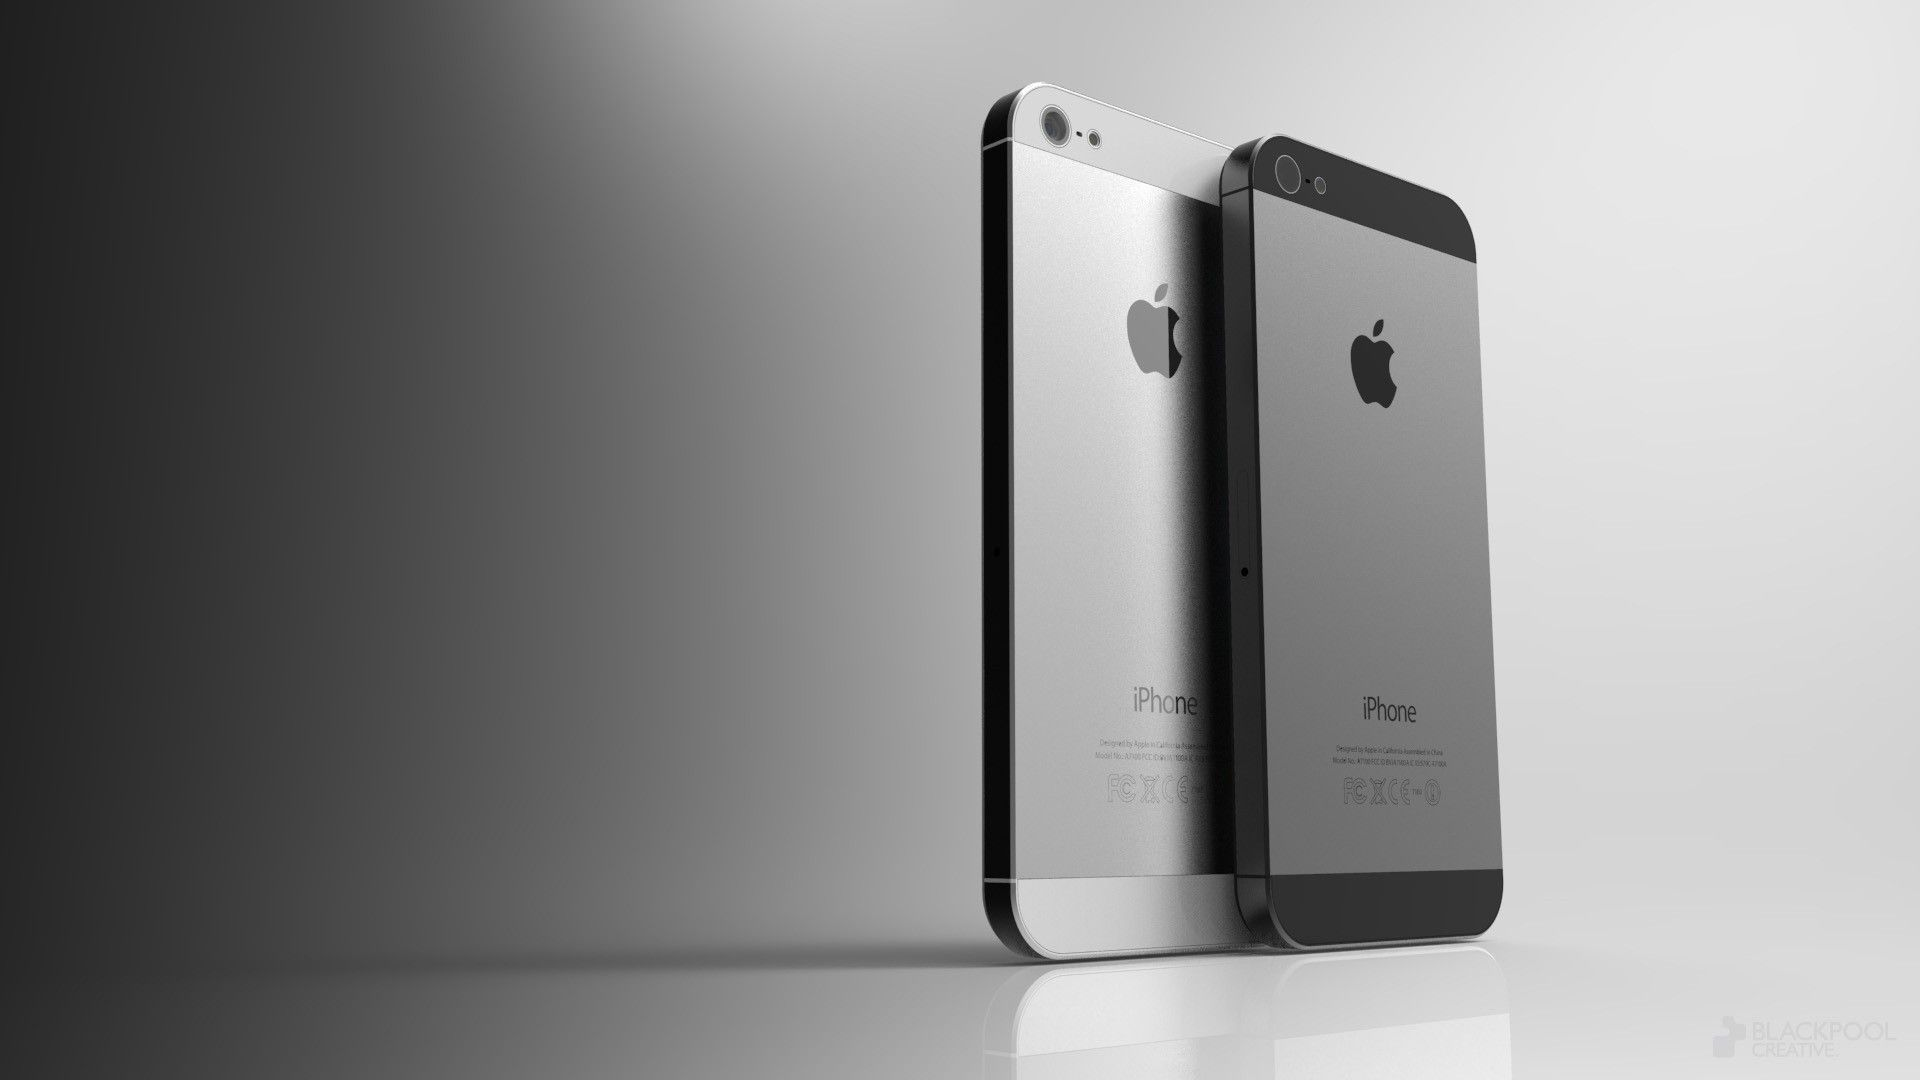 Apple Iphone 5 In High Resolution